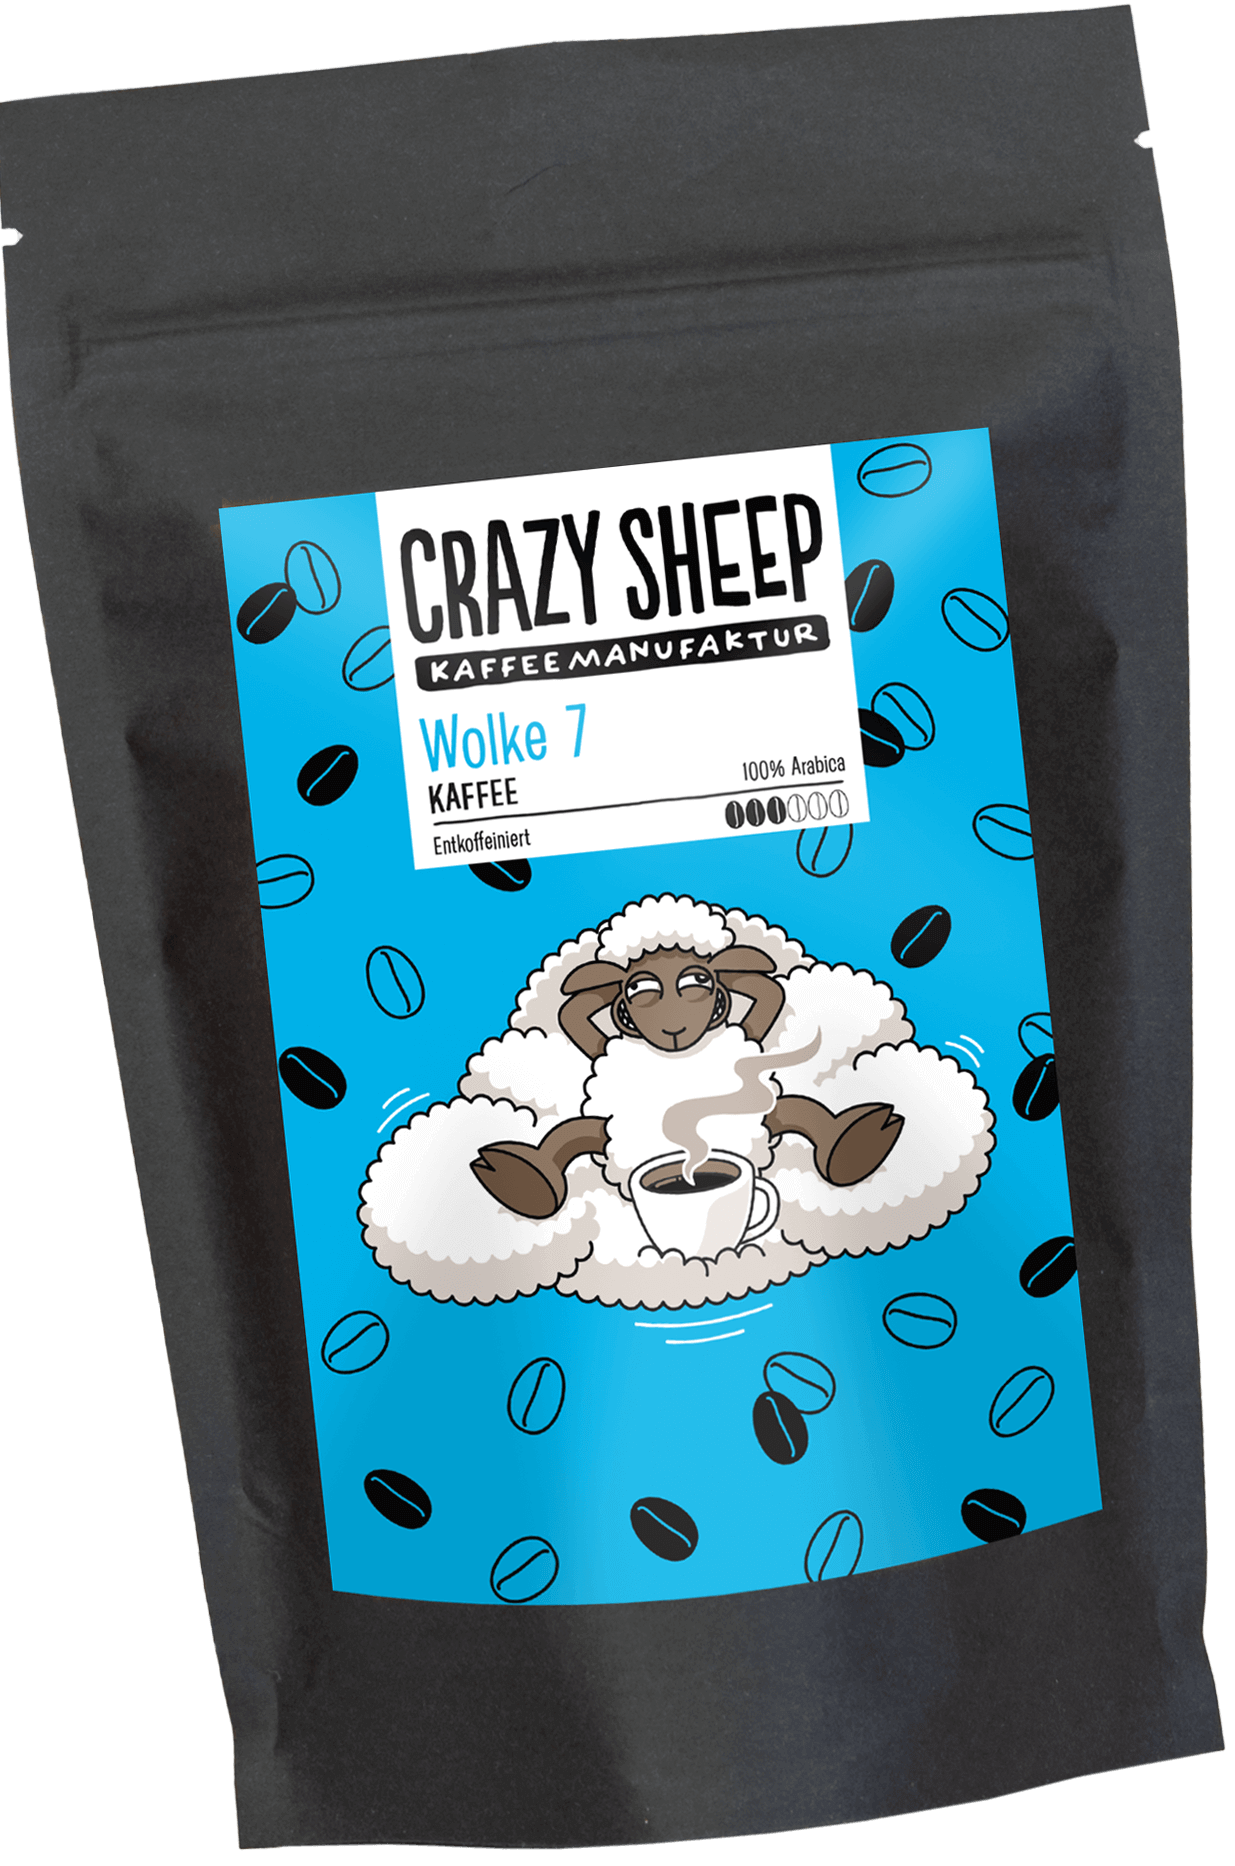 Wolke 7 Crazy Sheep Coffee